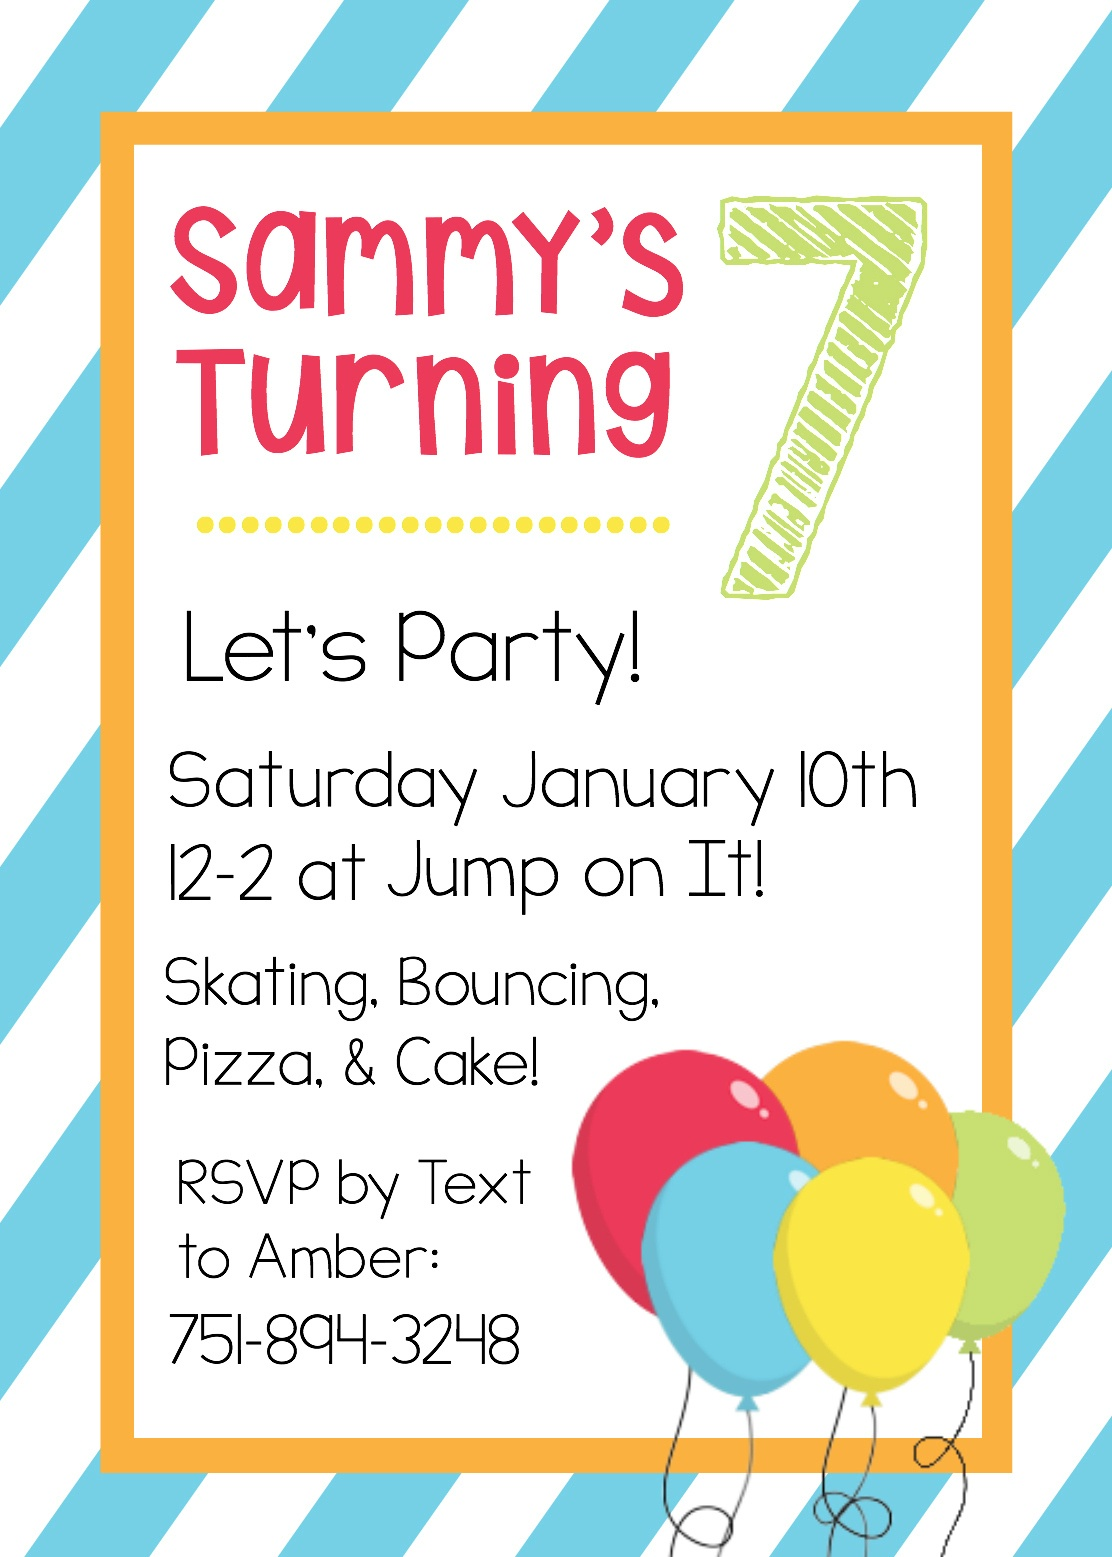 Free Printable Birthday Invitation Templates - Free Printable Birthday Party Invitations With Photo